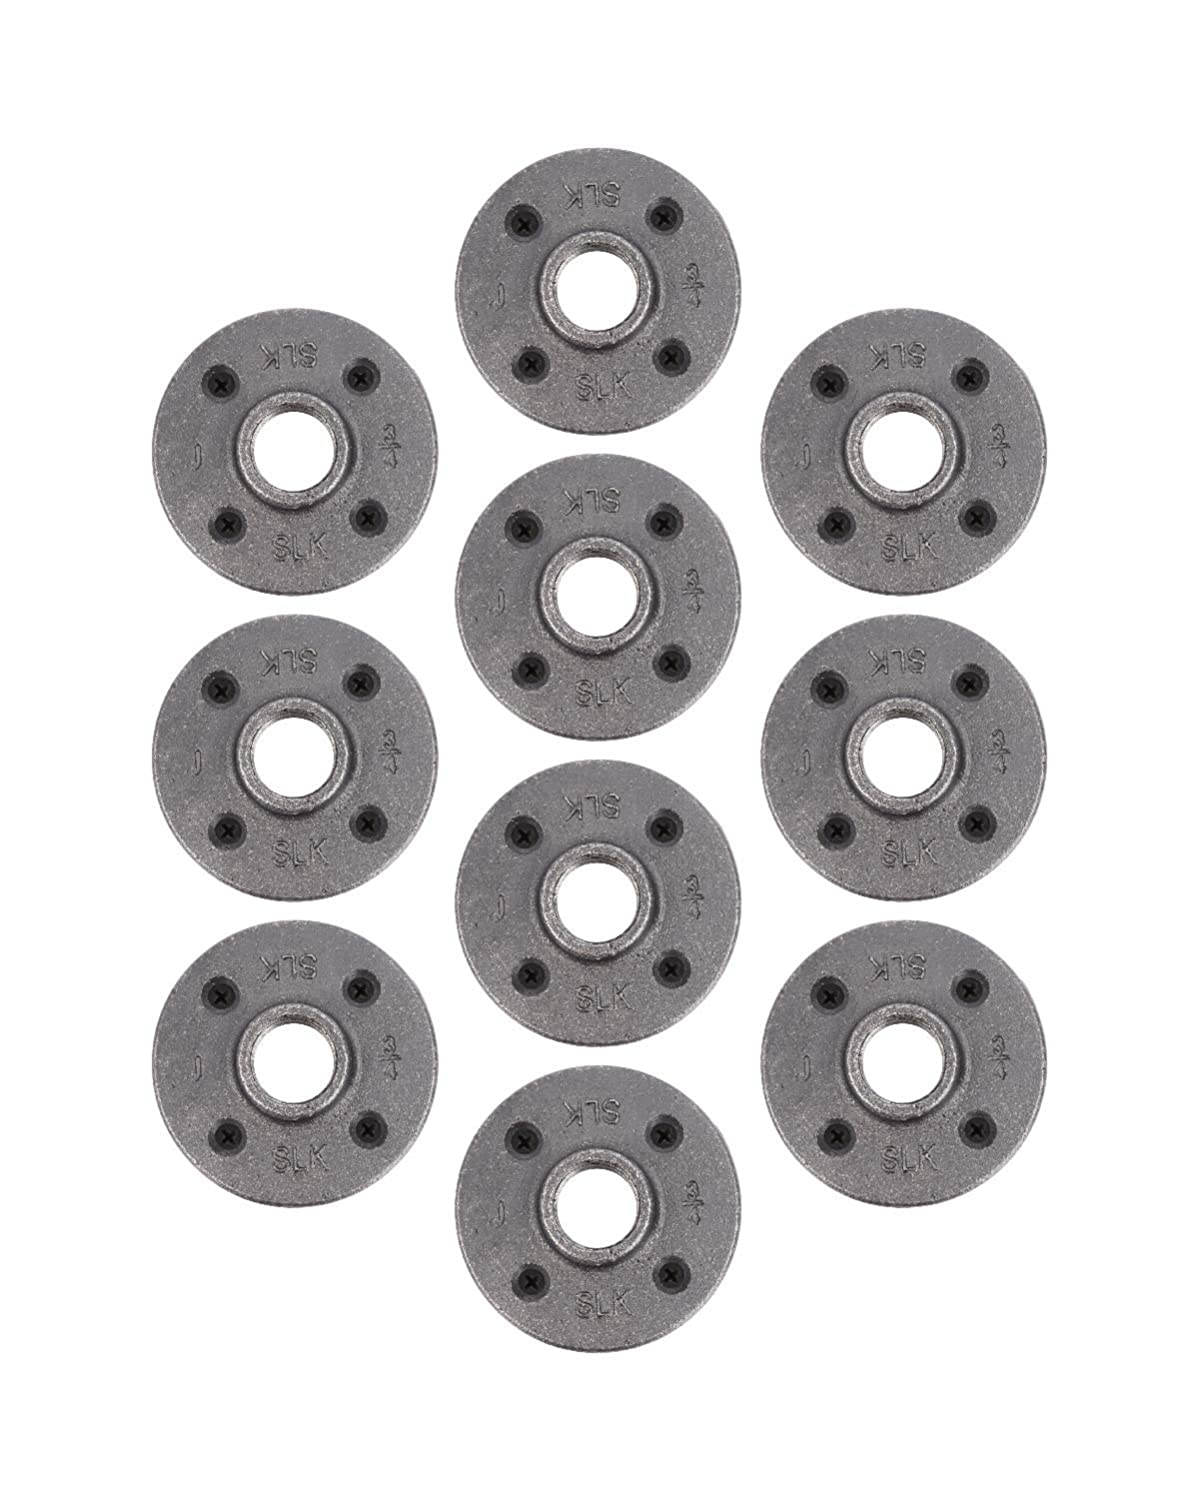 "Pipe Decor 1/2"" Malleable Cast Iron Floor Flange 10 Pack, Industrial Steel Grey Fits Standard Half Inch Threaded Black Pipes and Fittings,Vintage DIY Shelving, Ten Real AUTHENTIC Plumbing Flanges"